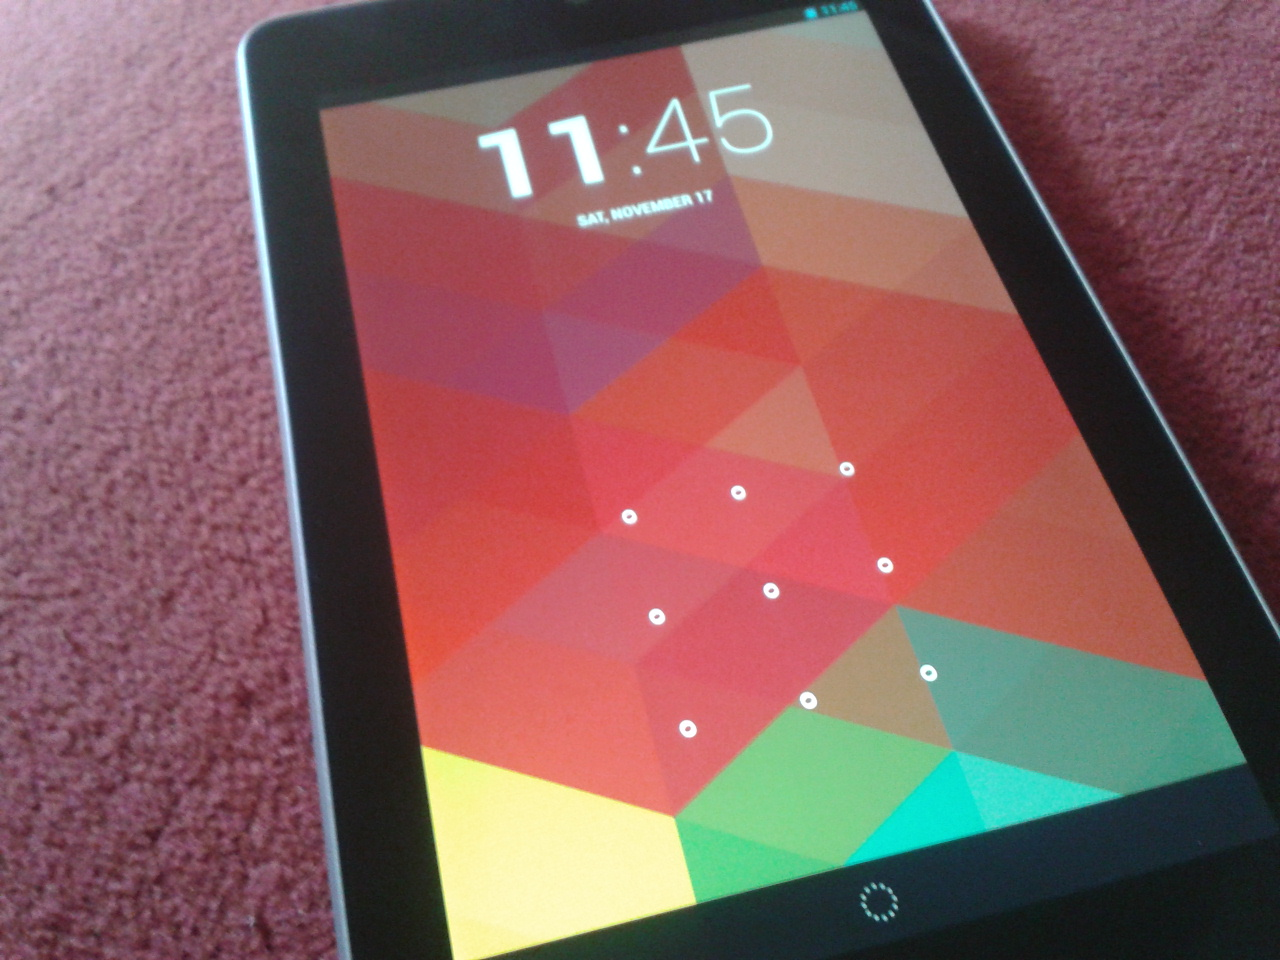 Android 4.2 lock screen